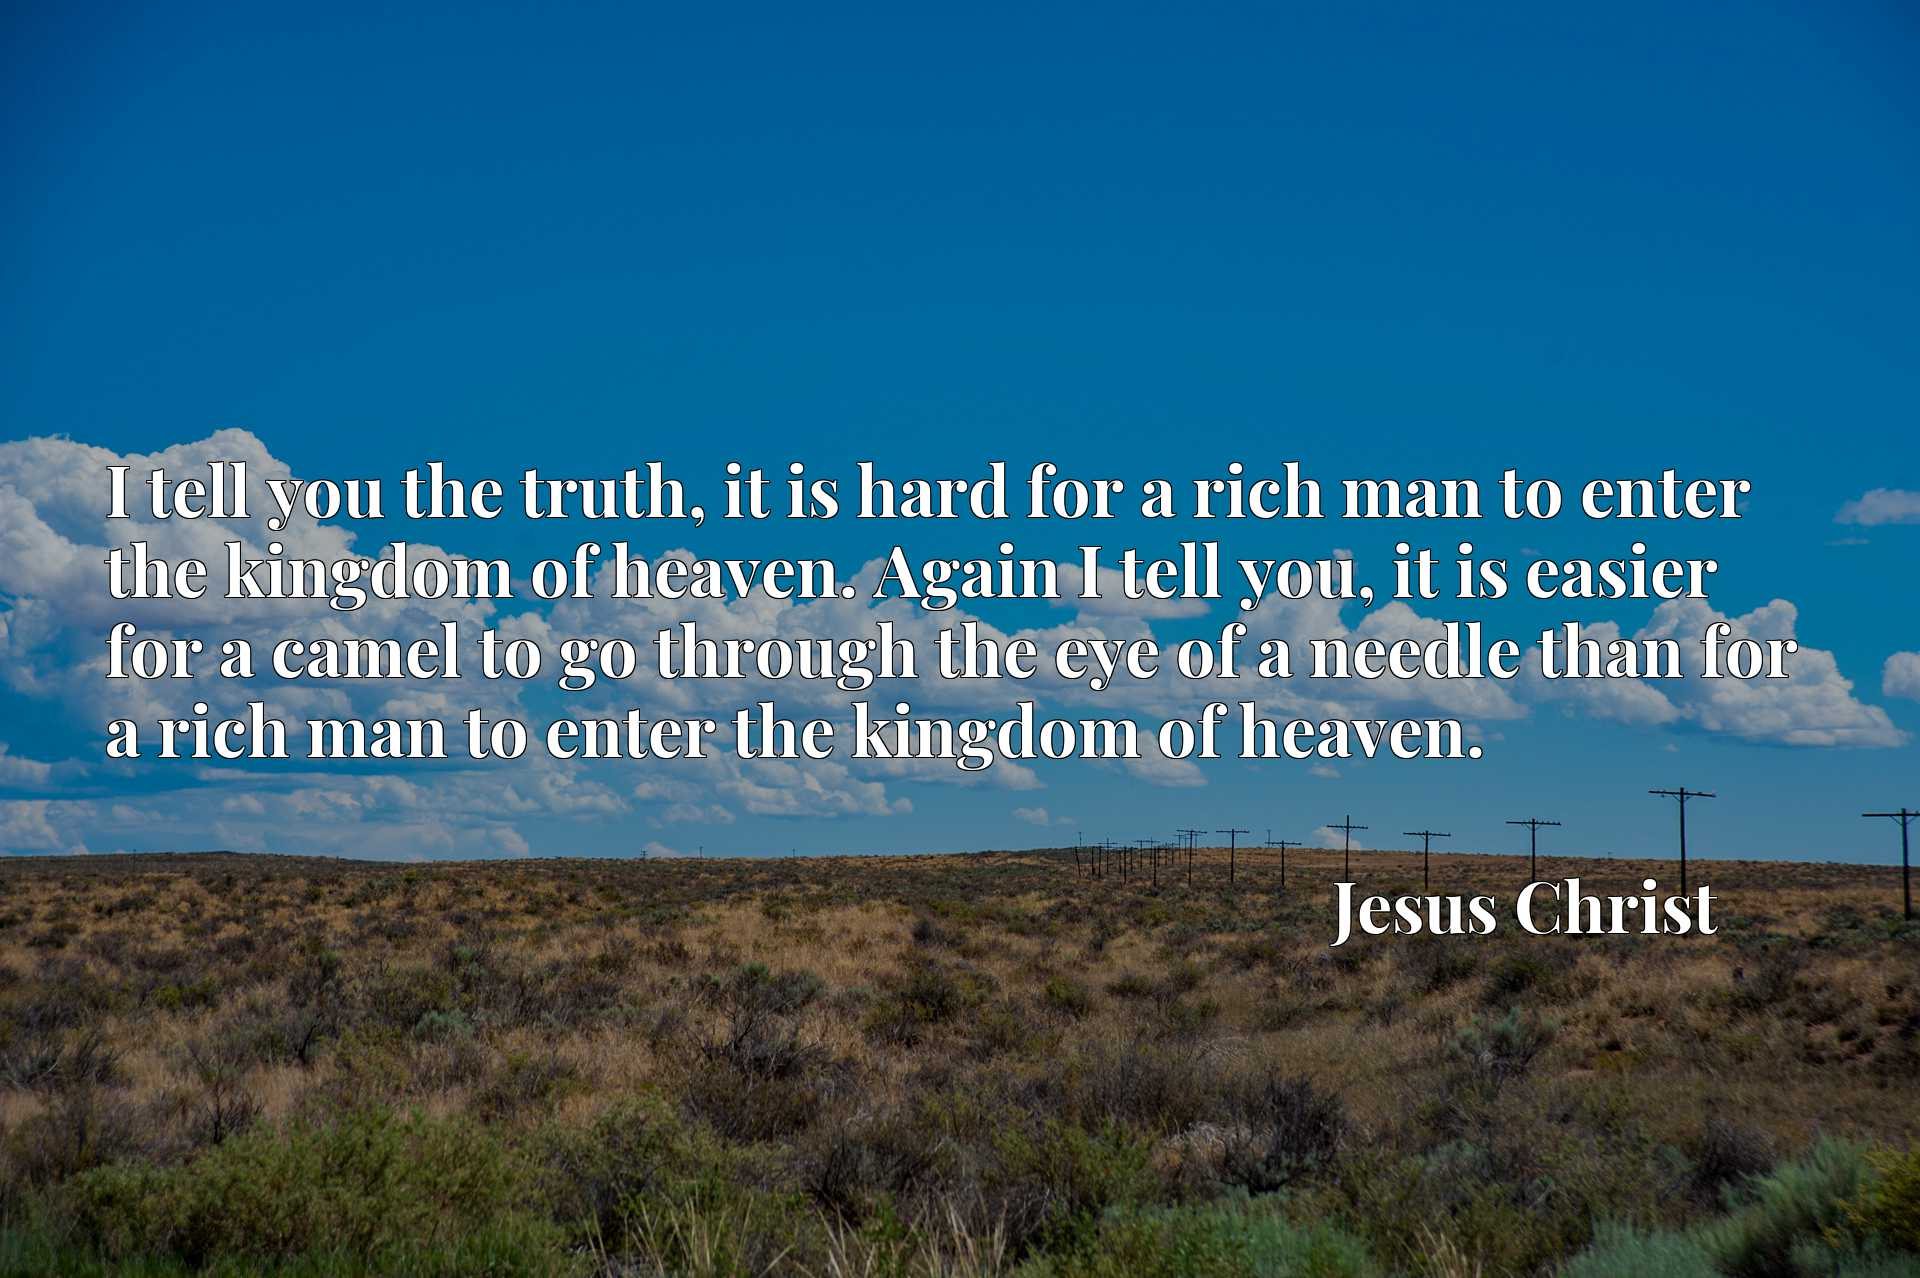 I tell you the truth, it is hard for a rich man to enter the kingdom of heaven. Again I tell you, it is easier for a camel to go through the eye of a needle than for a rich man to enter the kingdom of heaven.